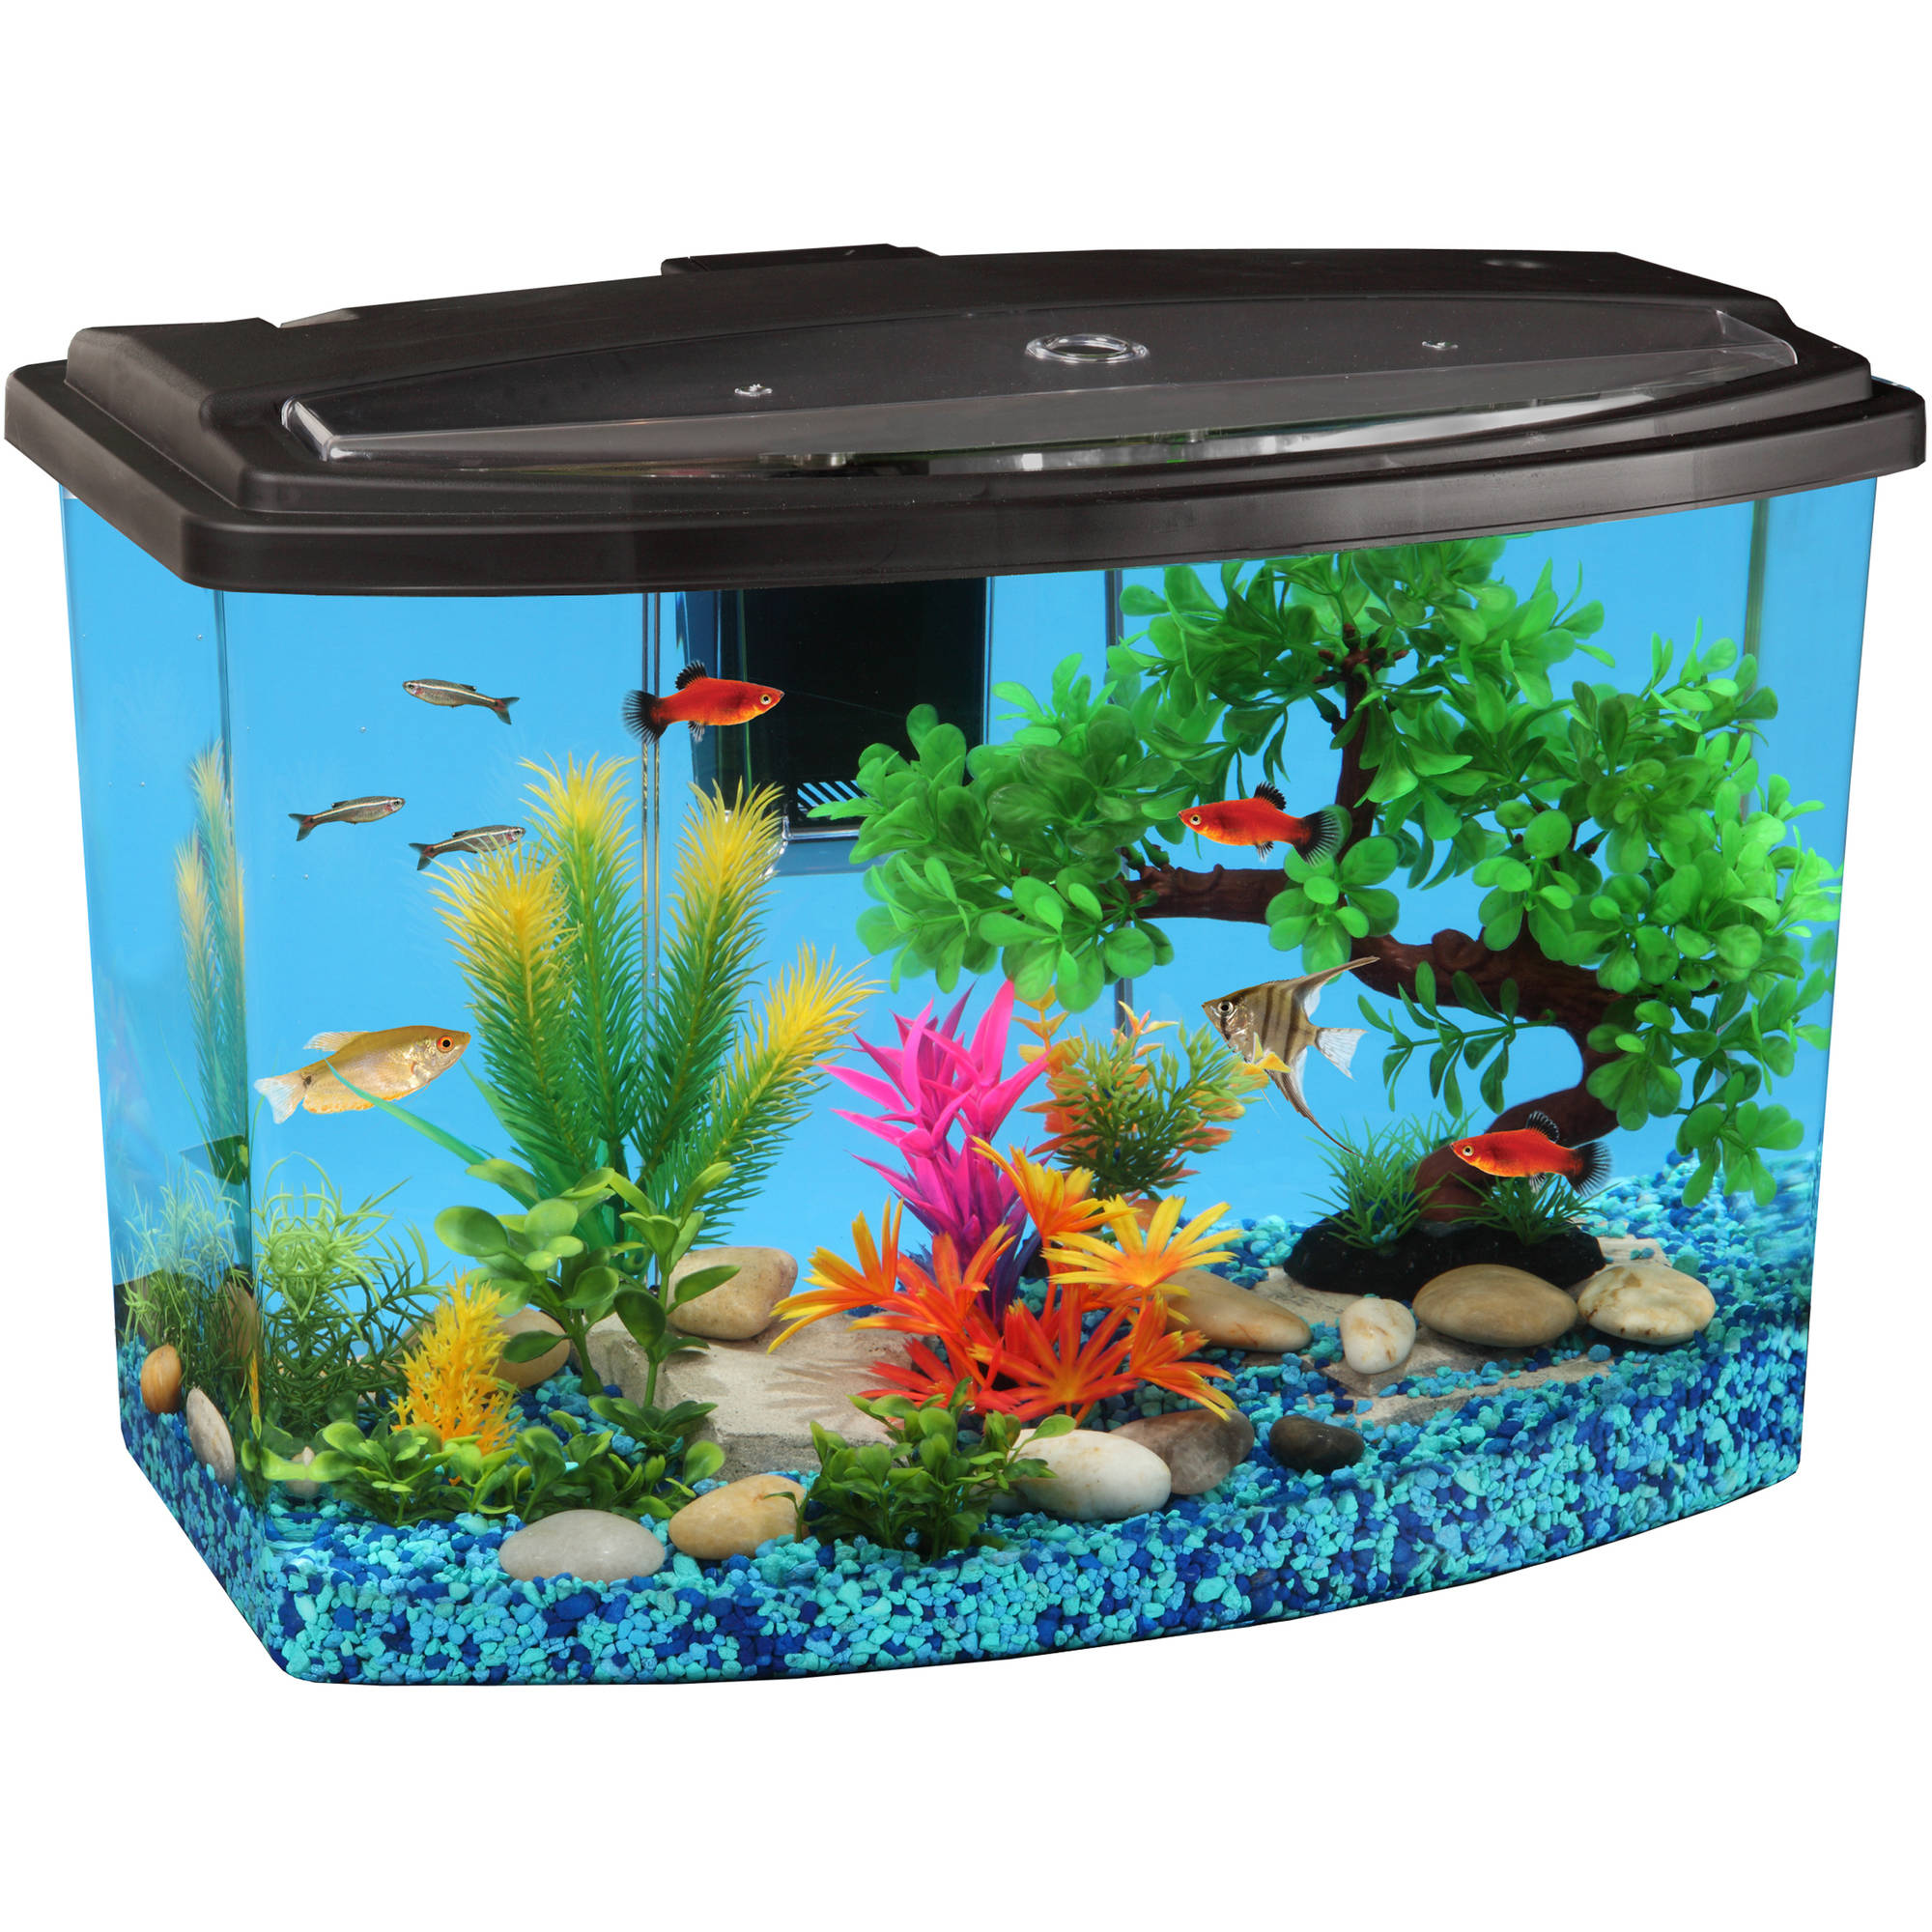 Hawkeye 7 Gallon Bow View Aquarium Kit With LED Light And Power Filter